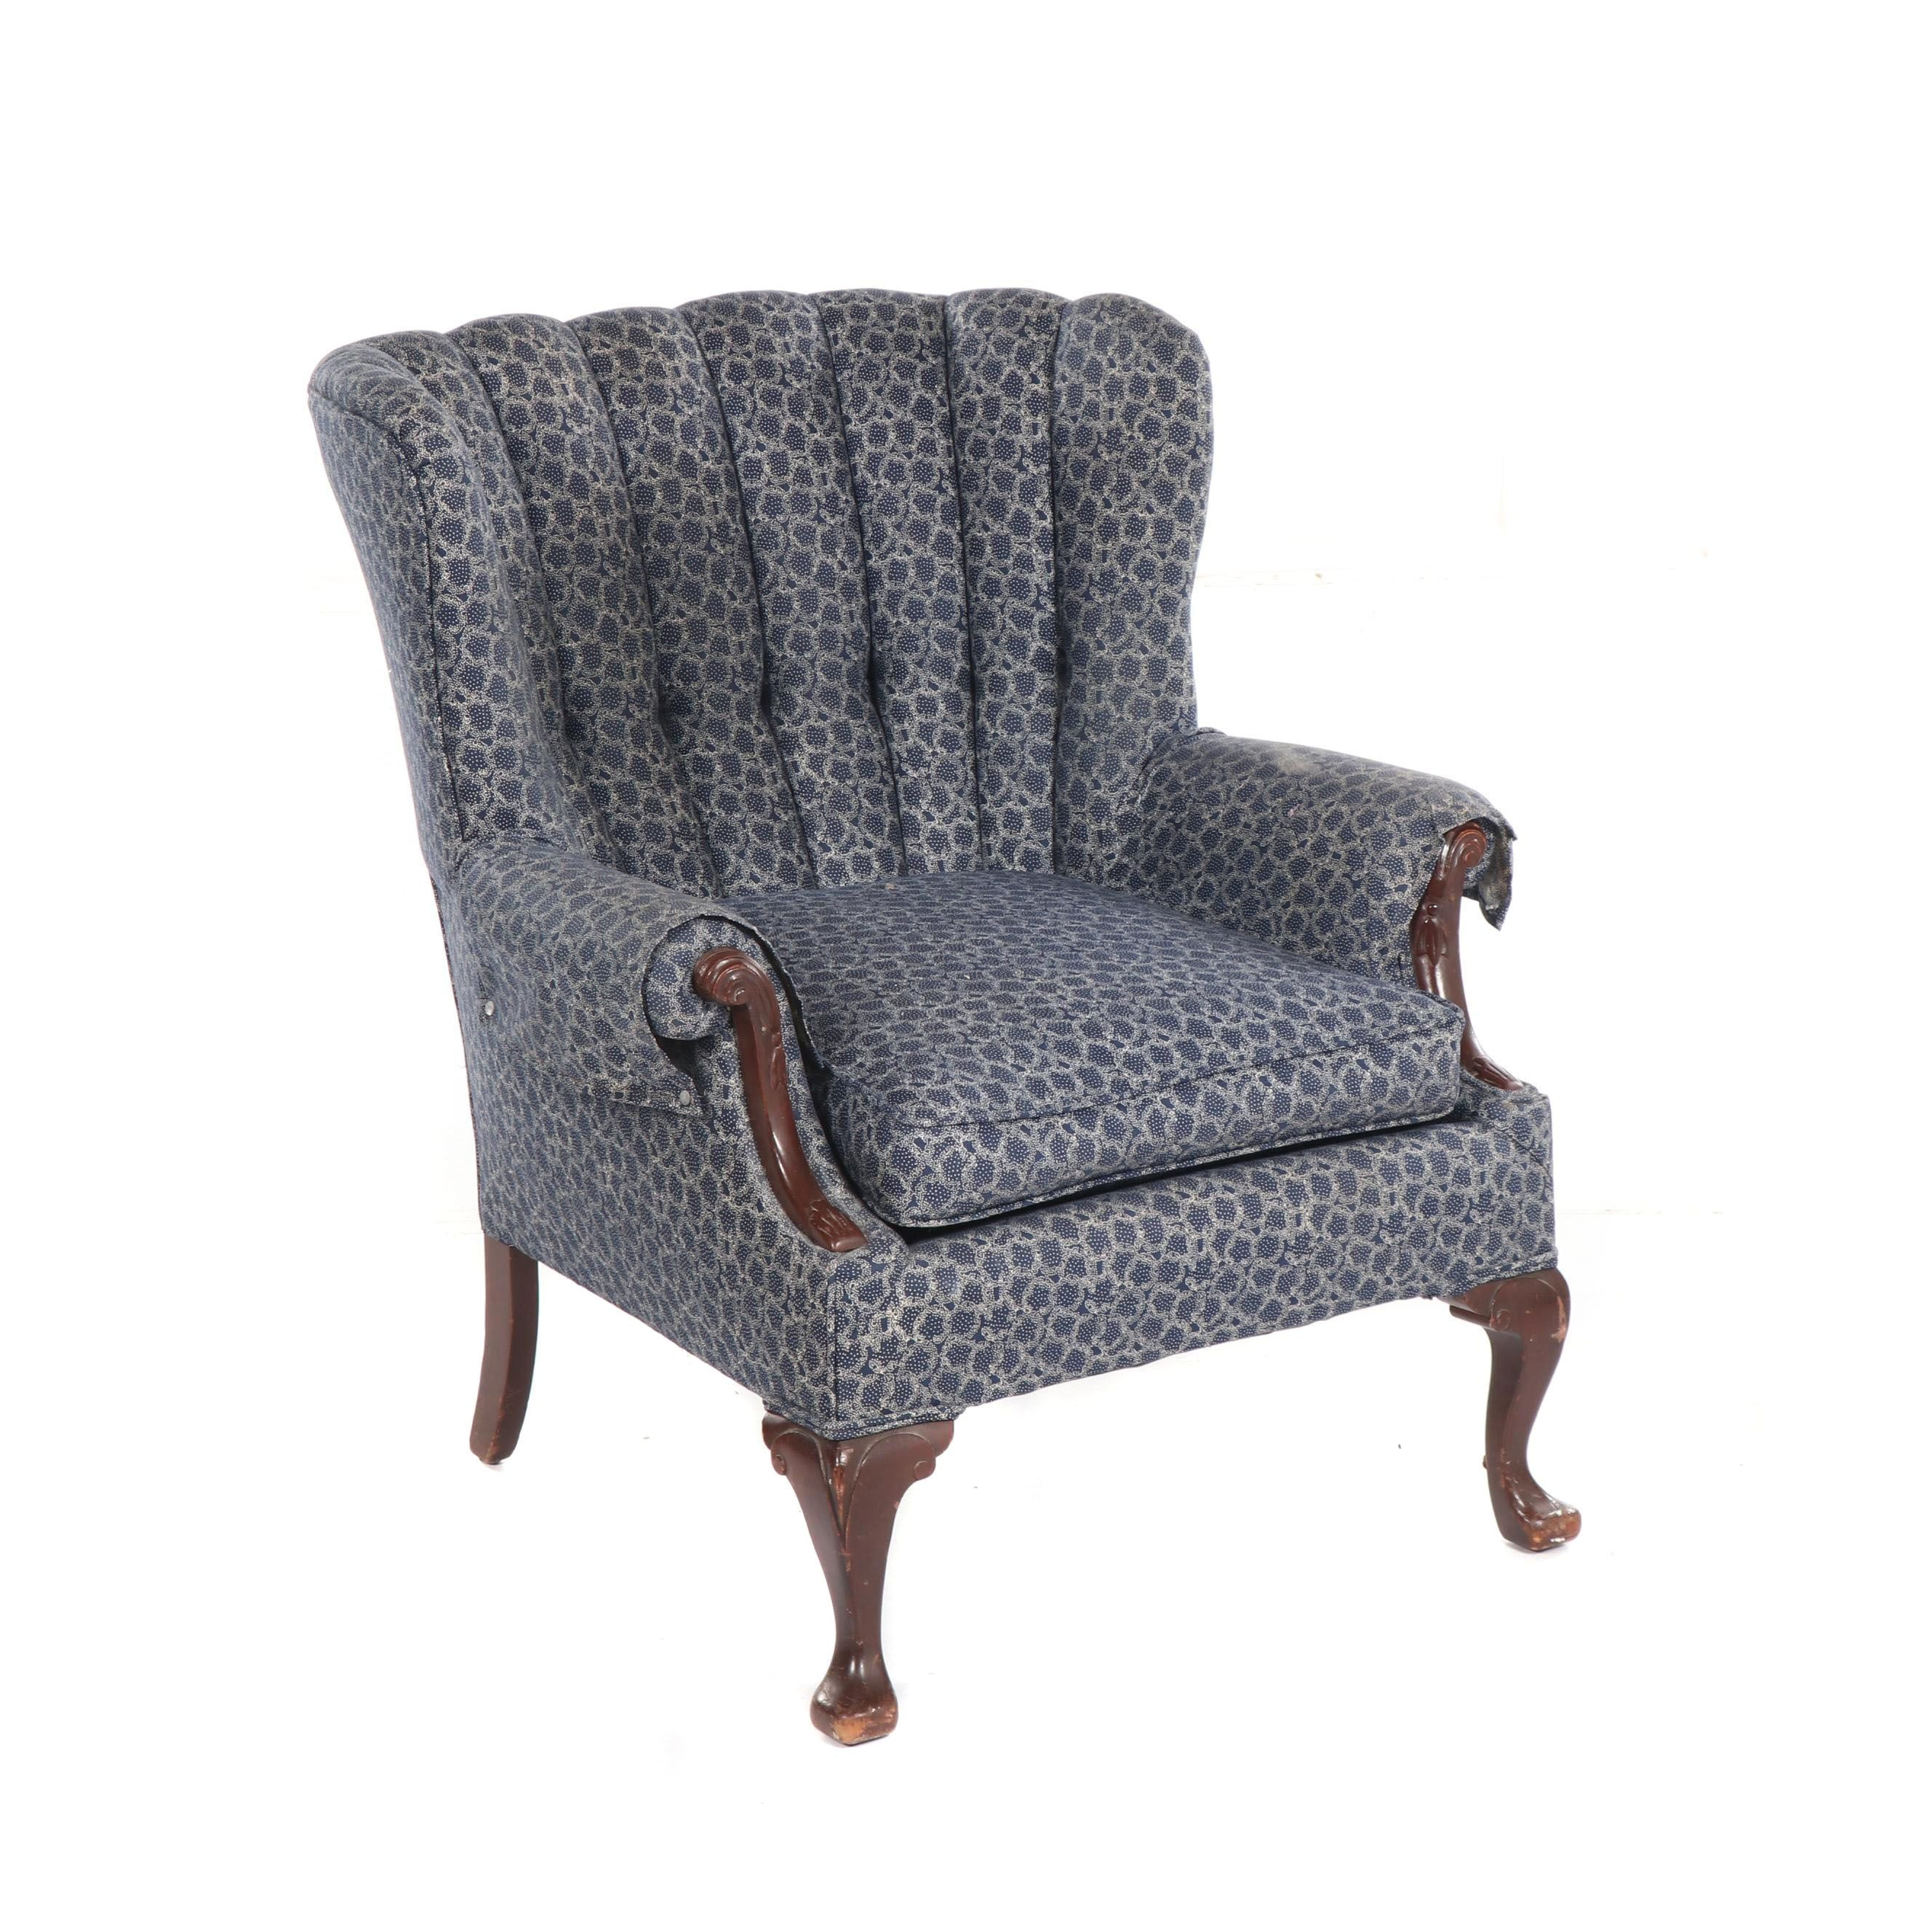 Queen Anne Style Upholstered Channel-Tufted Back Armchair, Mid-20th Century